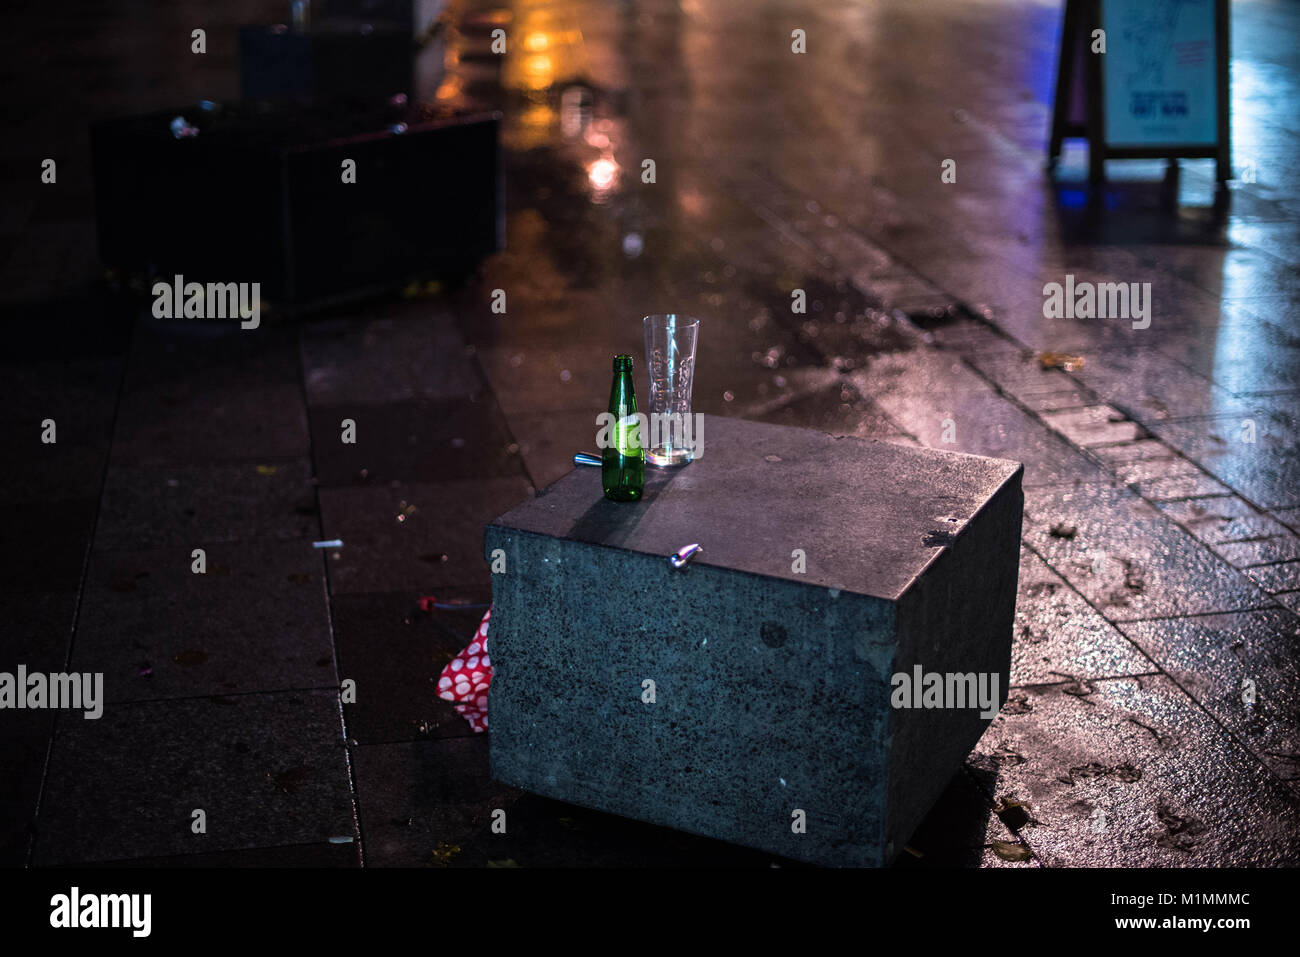 Cardiff, Wales, United Kingdom, 19/01/18. The End of Dry January. Dry January marks the month where people choose Stock Photo